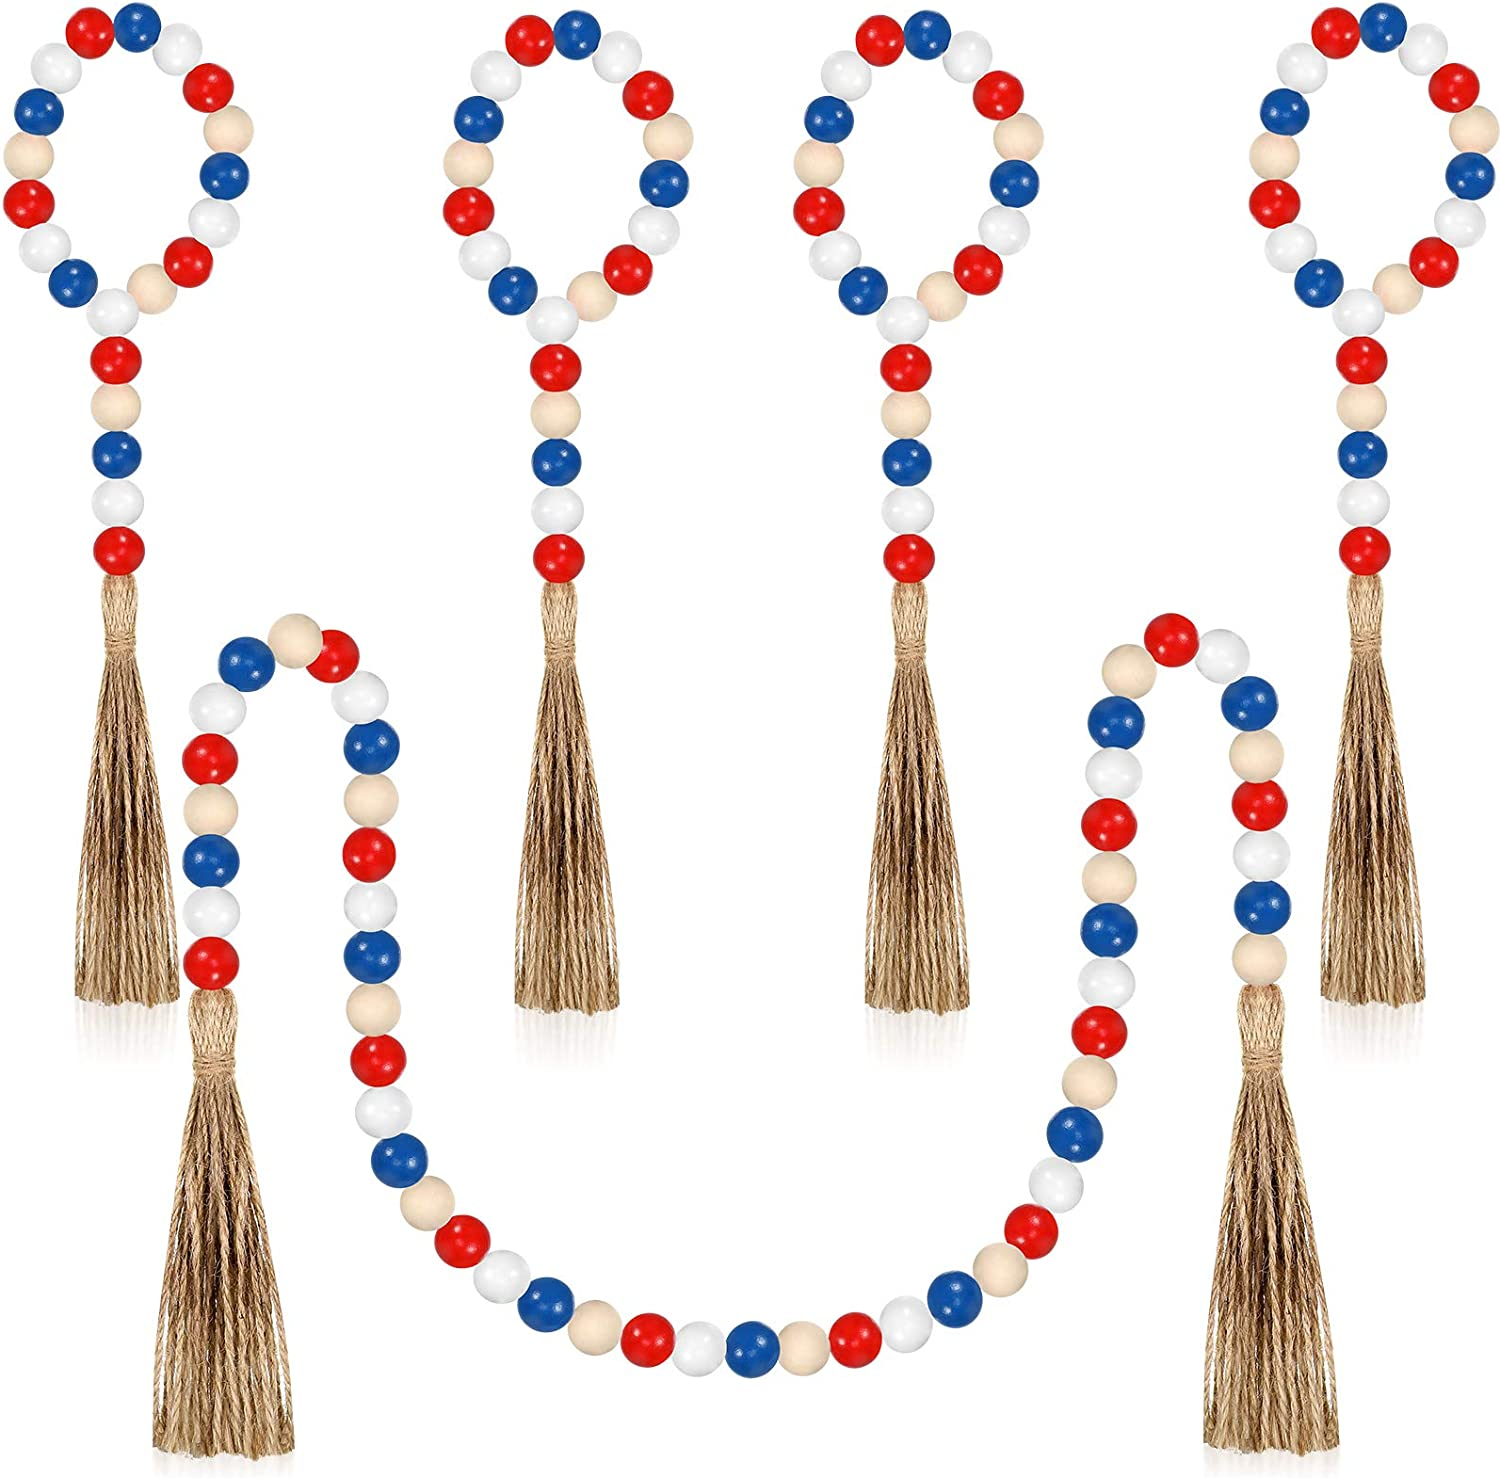 Set of 5 Independence Day Wood Bead Garland Patriotic 4th of July Wood Bead Garland Tassel Farmhouse Beads Rustic Country Decor Prayer Home Wall Hanging Beads (Red White Blue,100 cm/ 39 Inches)